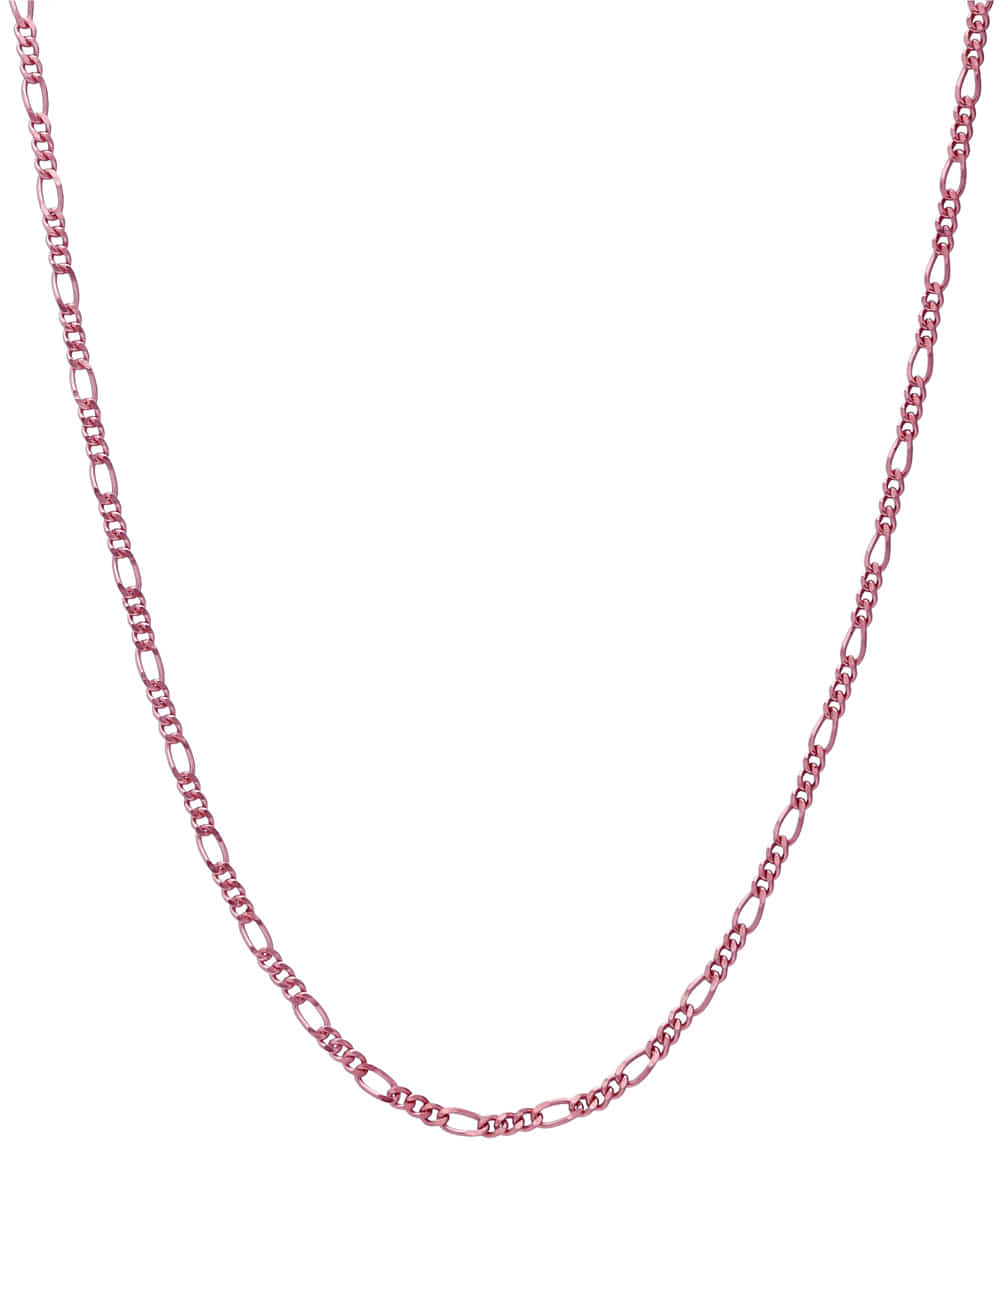 925 Silver Color Coated Chain Necklace _ 블랙 핑크 브라운 체인목걸이 라비쉬에